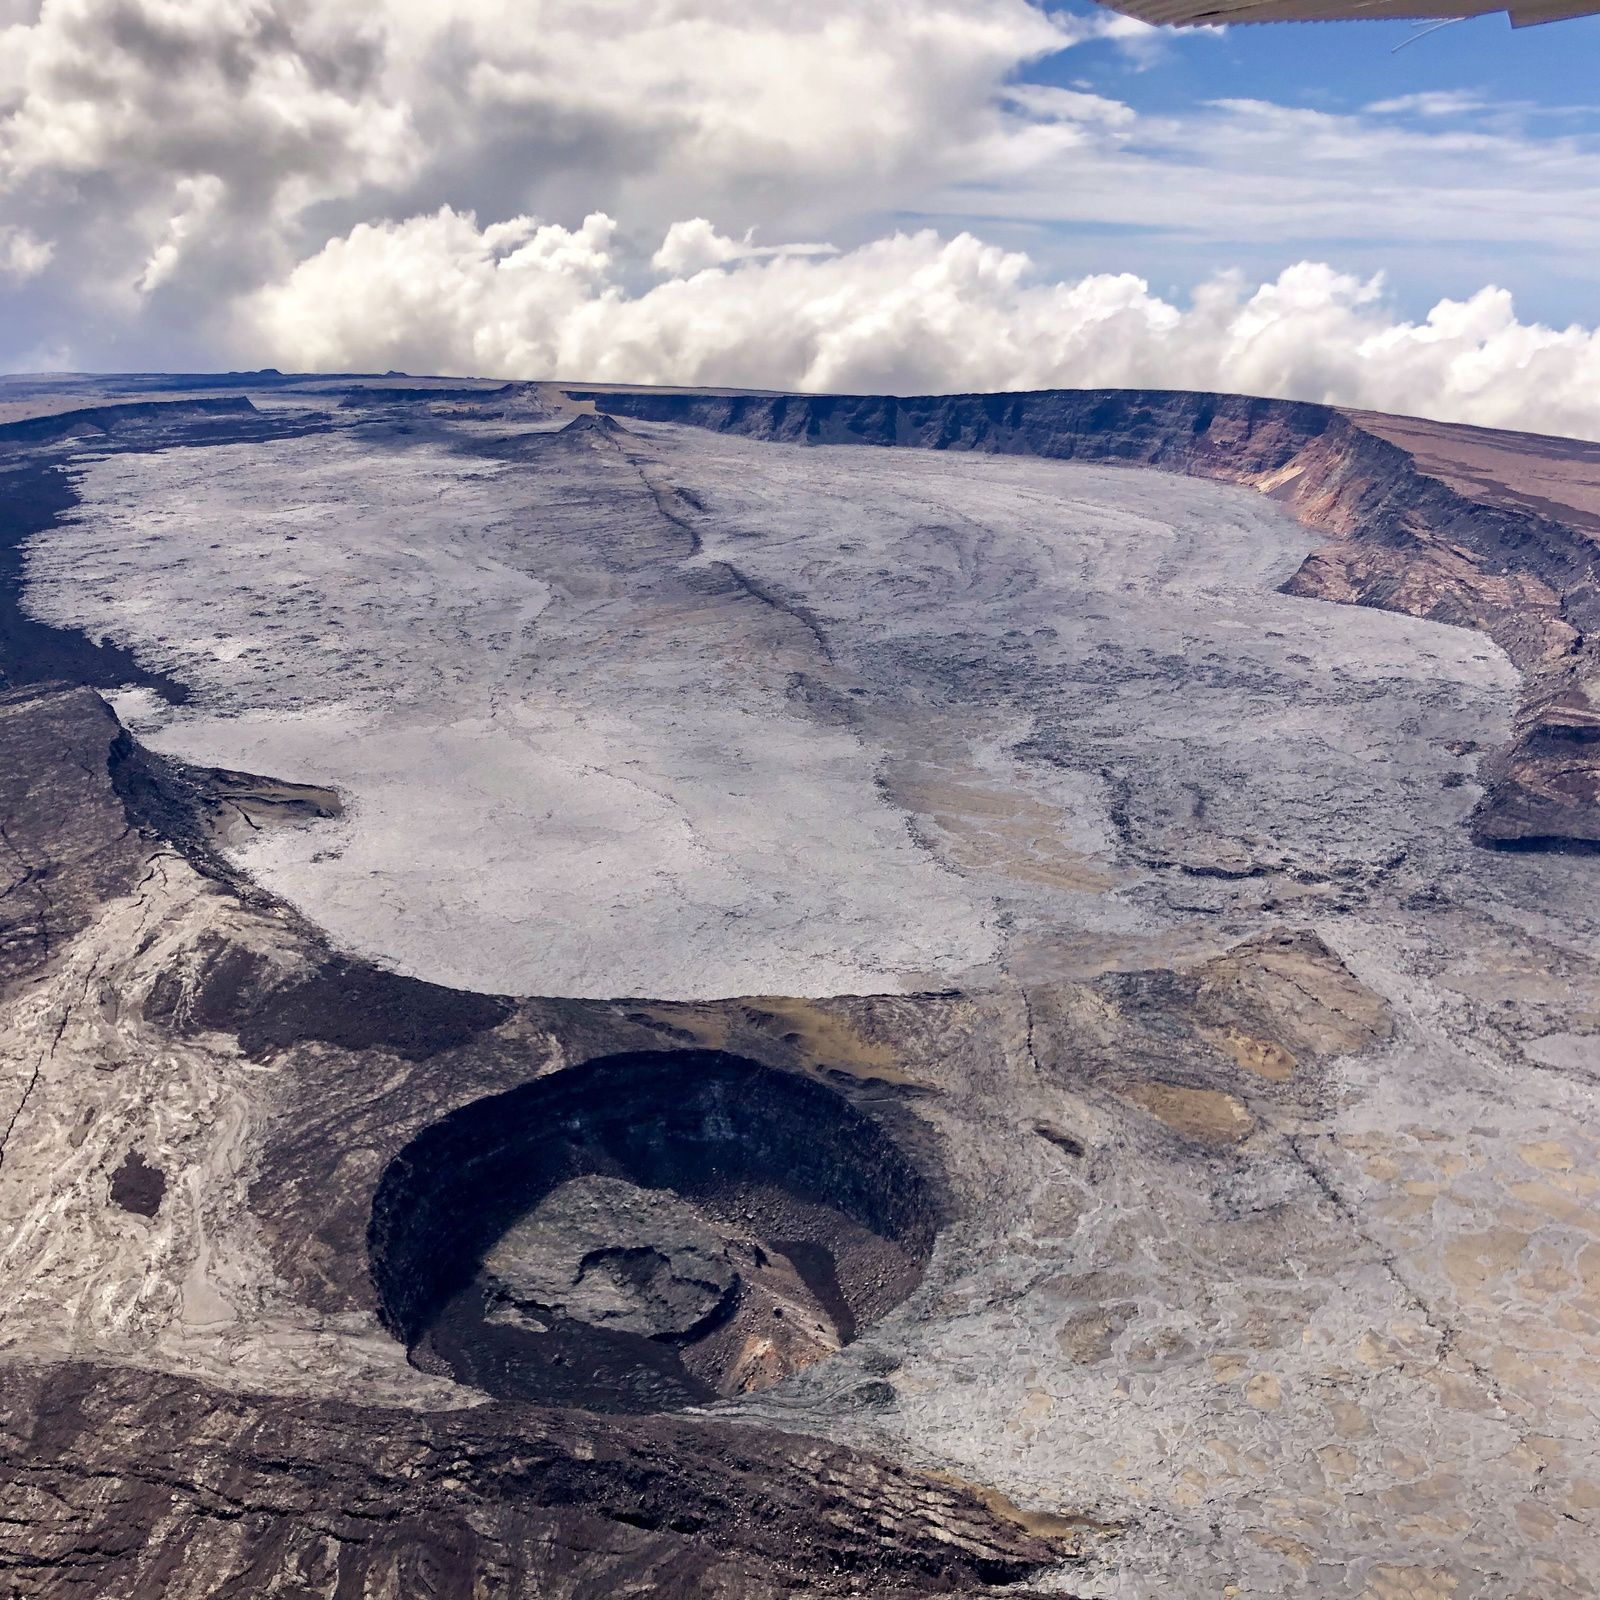 Mauna Loa - Summit caldera, Moku'āweoweo, intersected by a crack formed by the eruption of 1984, and the pit crater Lua Poholo, bottom left - Civil Air Patrol photo of October 20, 2019